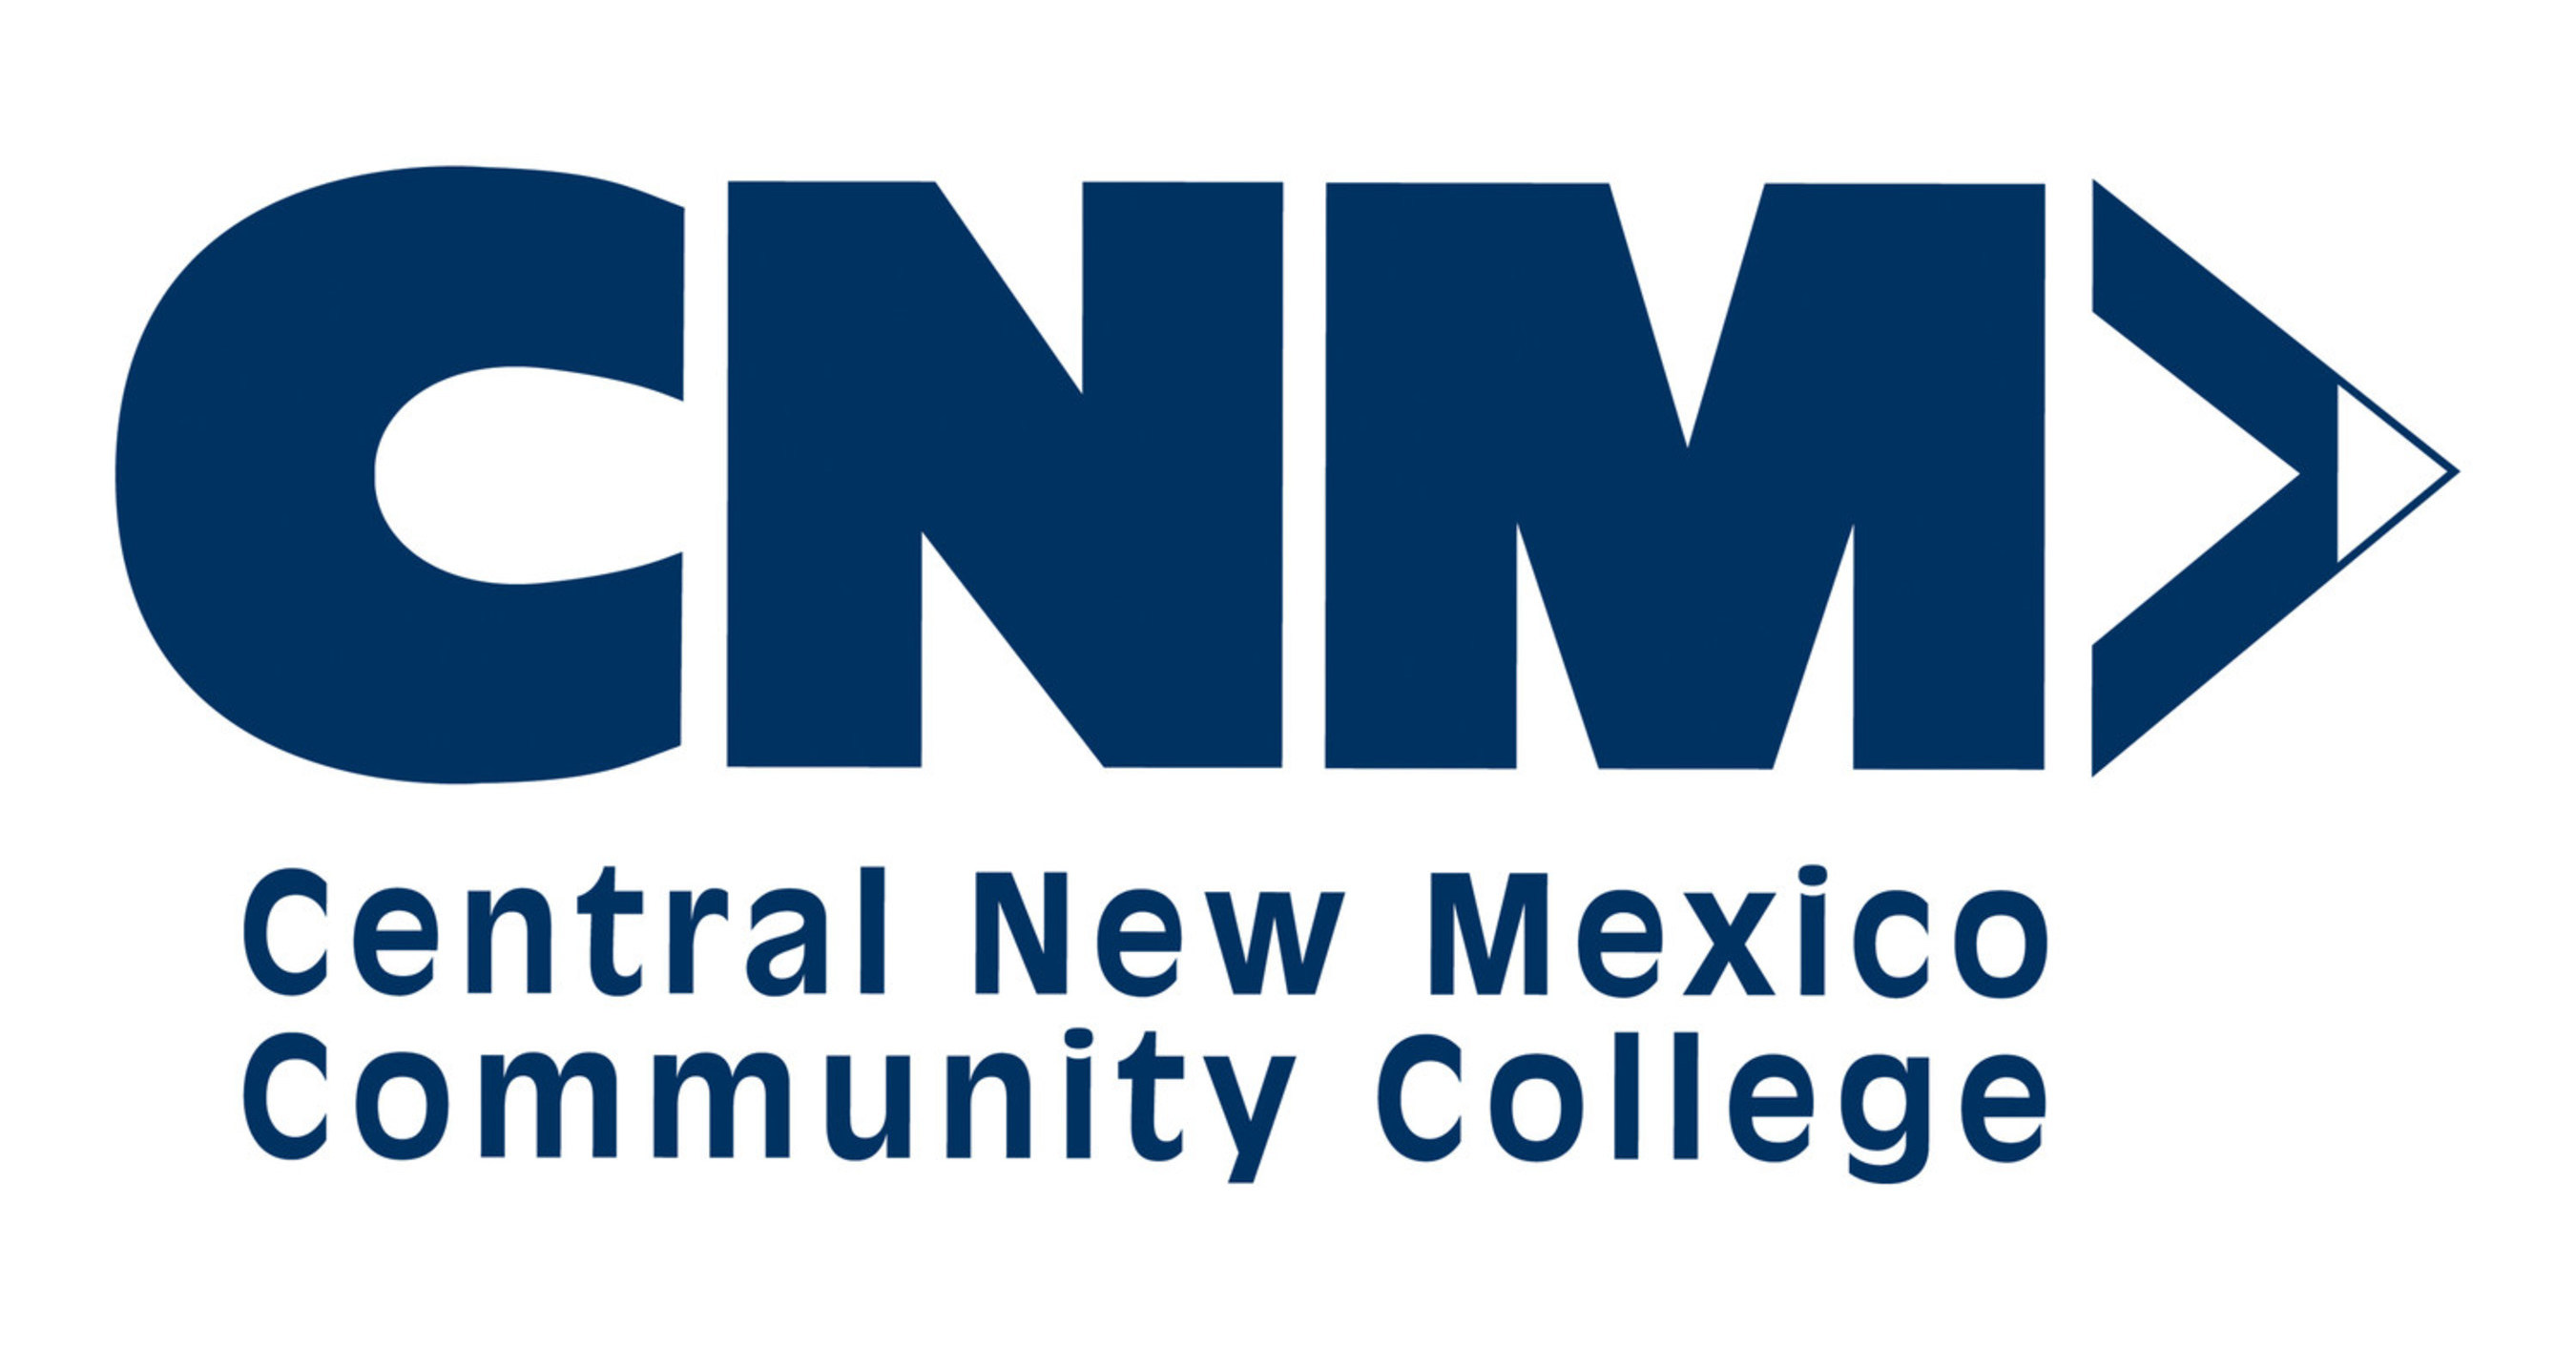 Central New Mexico Community College | Cappex |New Mexico Community College